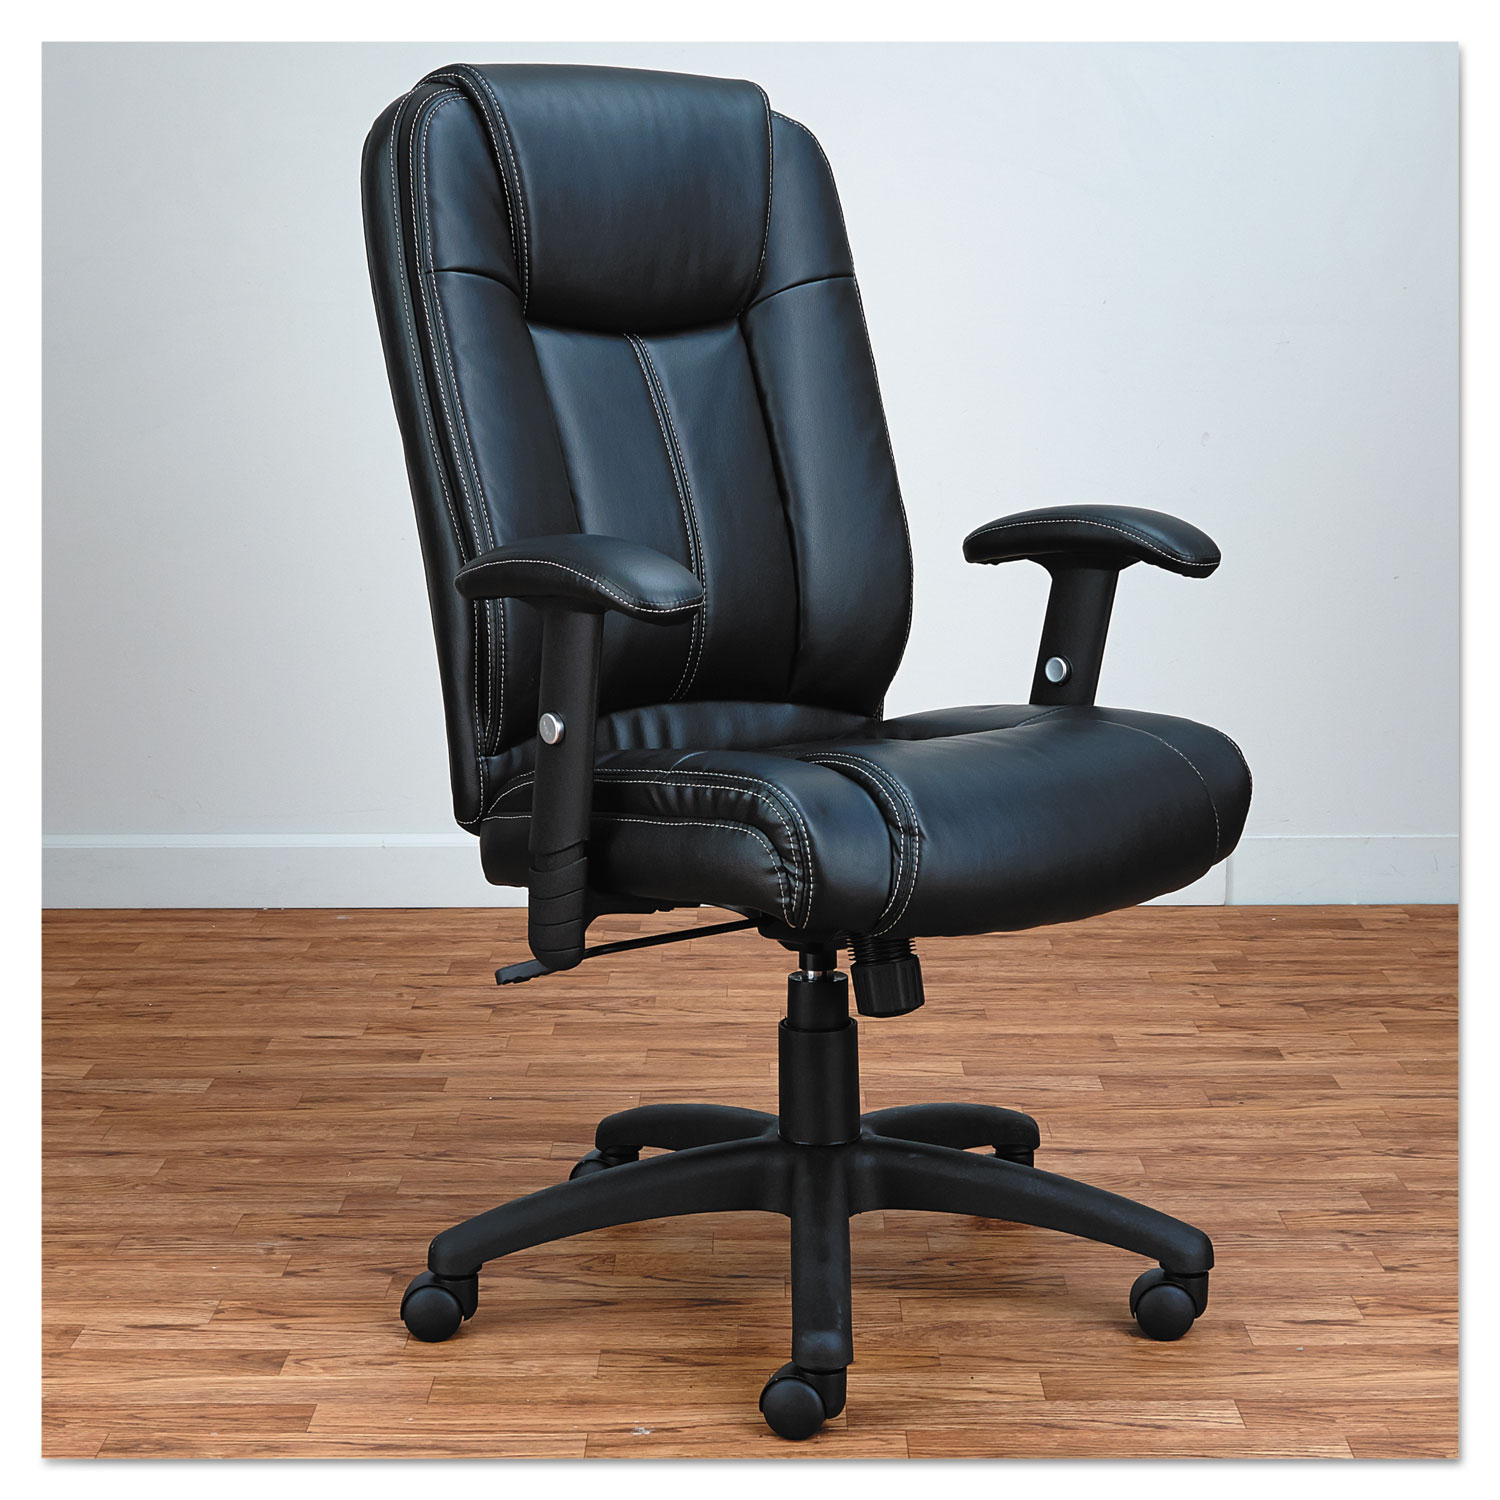 Alera Chair Alera Cc Series Executive High Back Swivel Tilt Leather